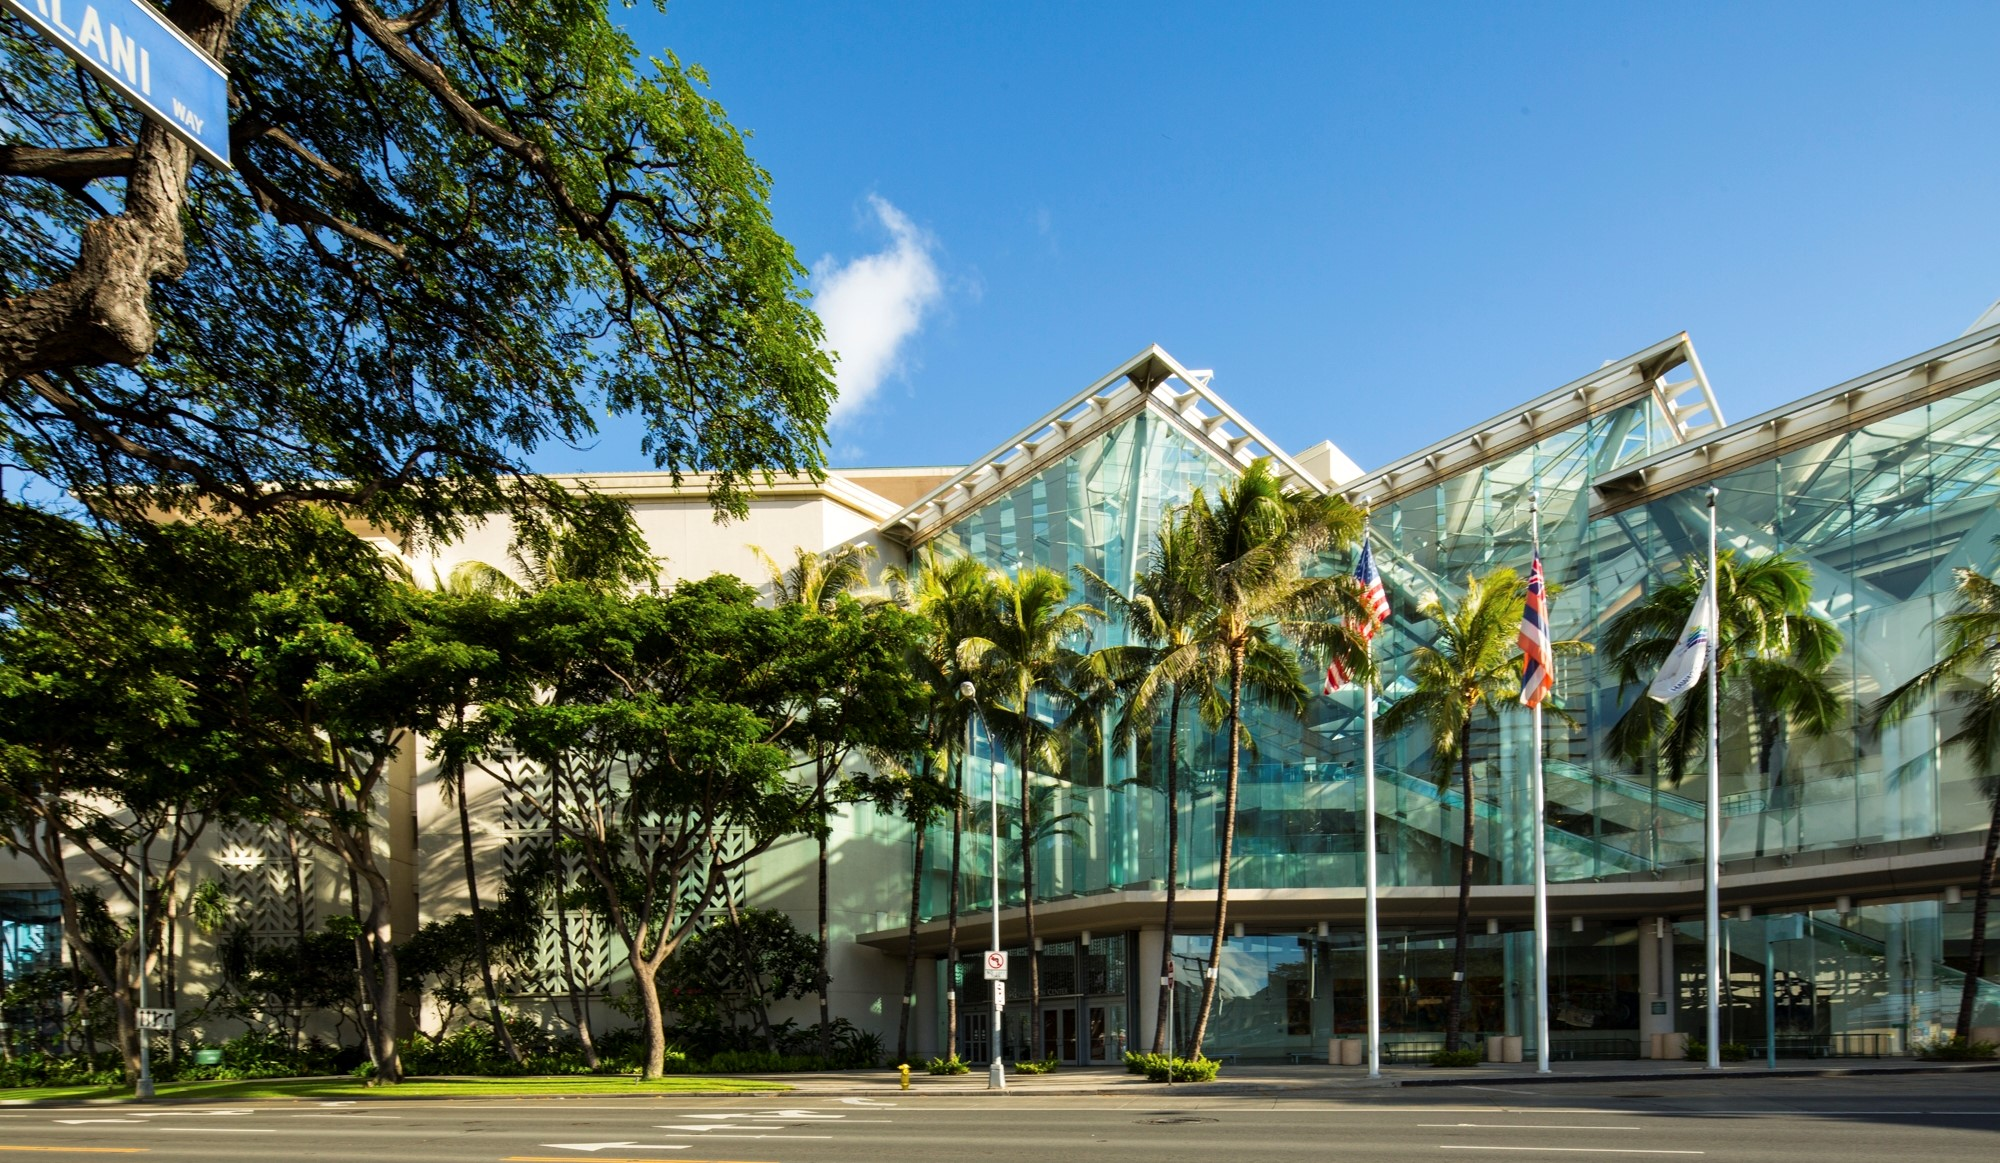 Hawaii convention center is LEED Gold